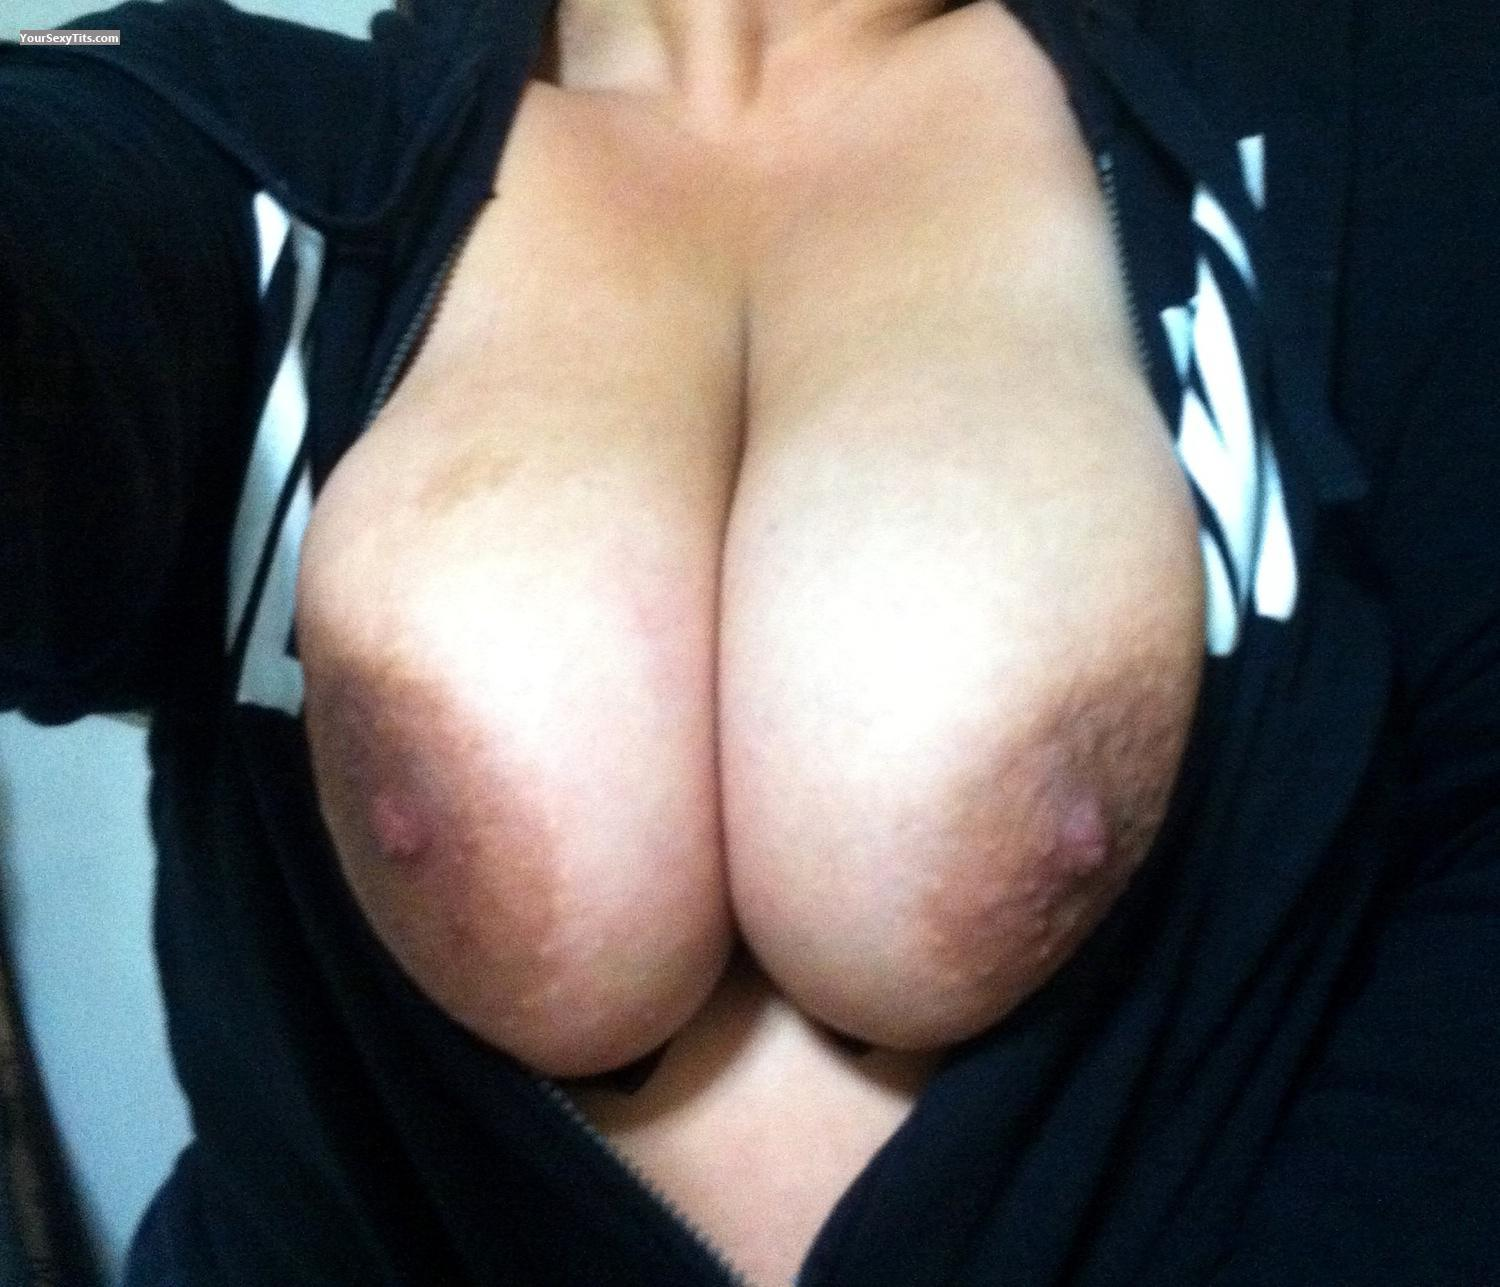 Tit Flash: Extremely Big Tits By IPhone - Lady Dee from United States